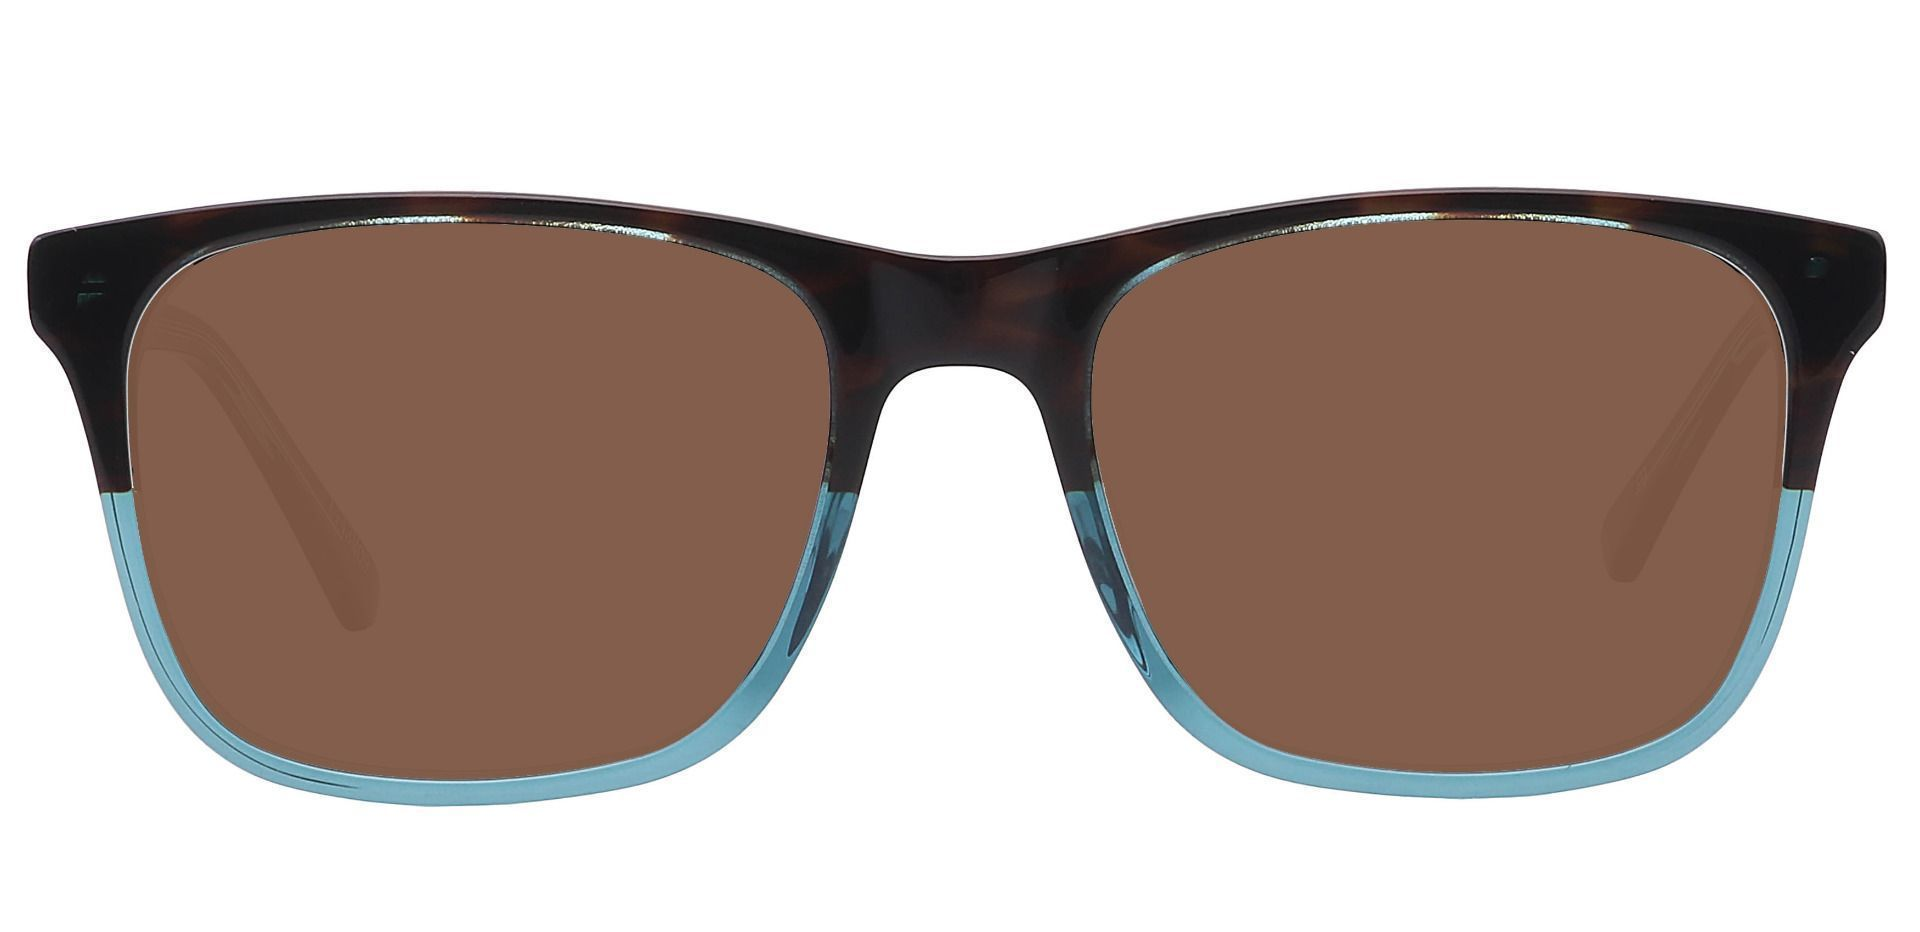 Cantina Square Lined Bifocal Sunglasses - Multi Color Frame With Brown Lenses